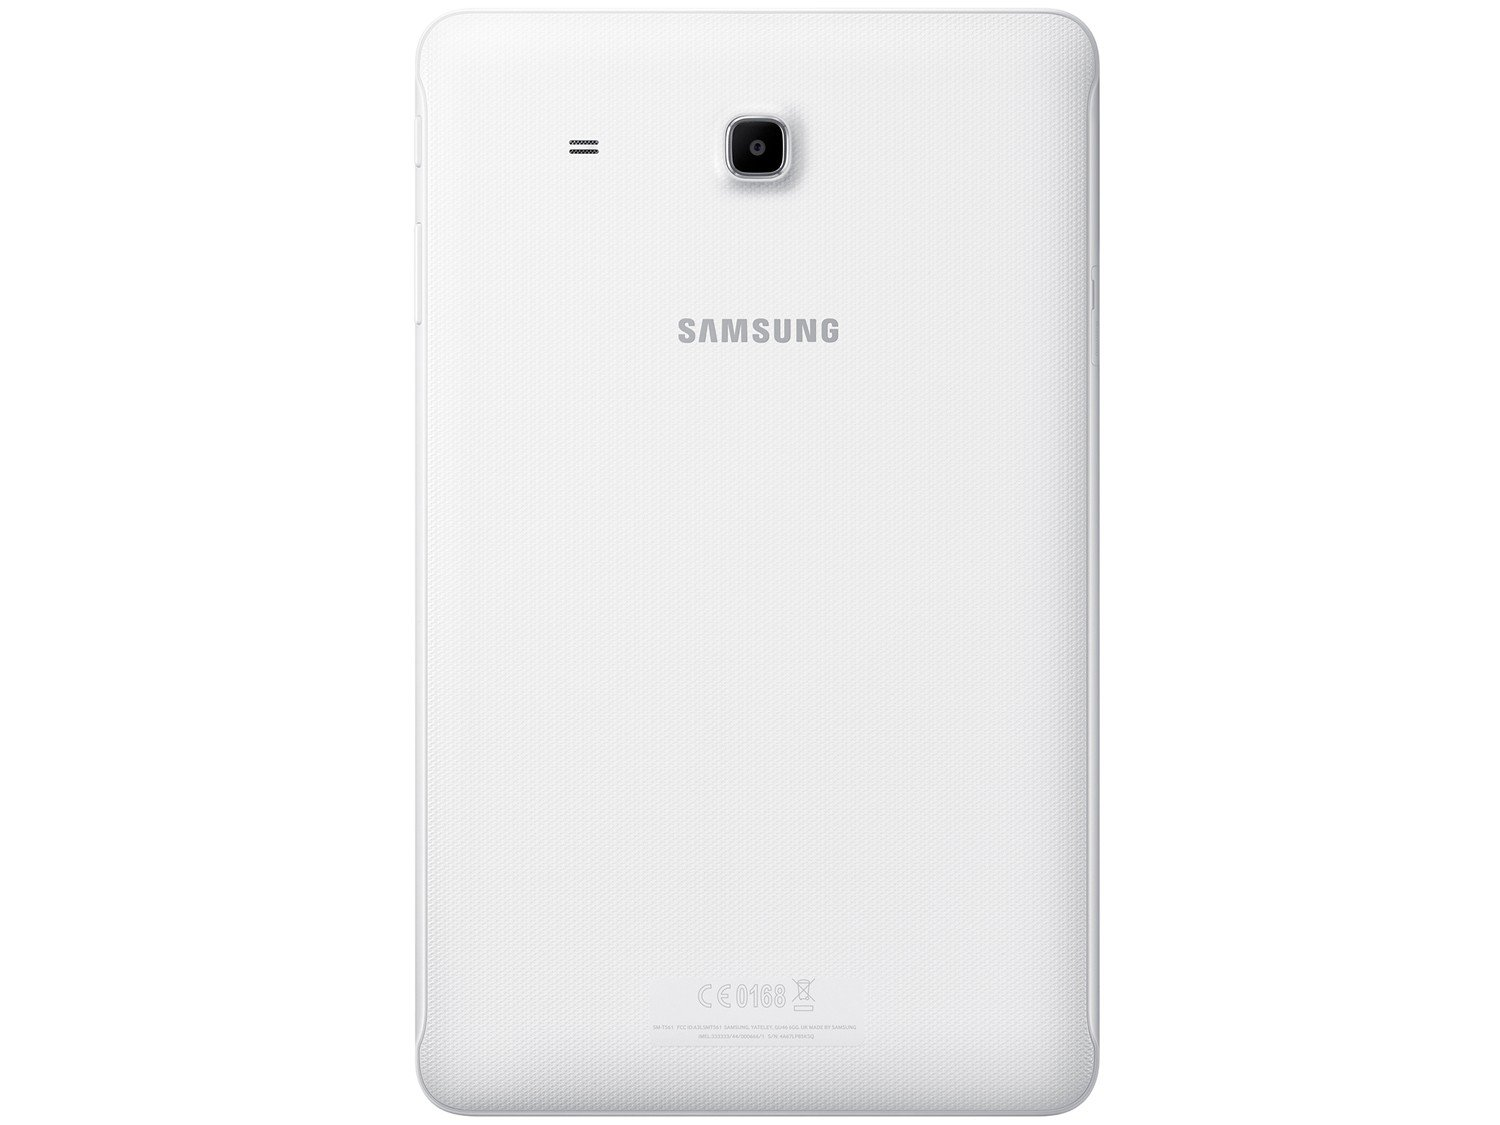 Foto 3 - Tablet Samsung Galaxy Tab E T560 8GB 9,6 Wi-Fi - Android 4.4 Proc. Quad Core Câm. 5MP + Frontal